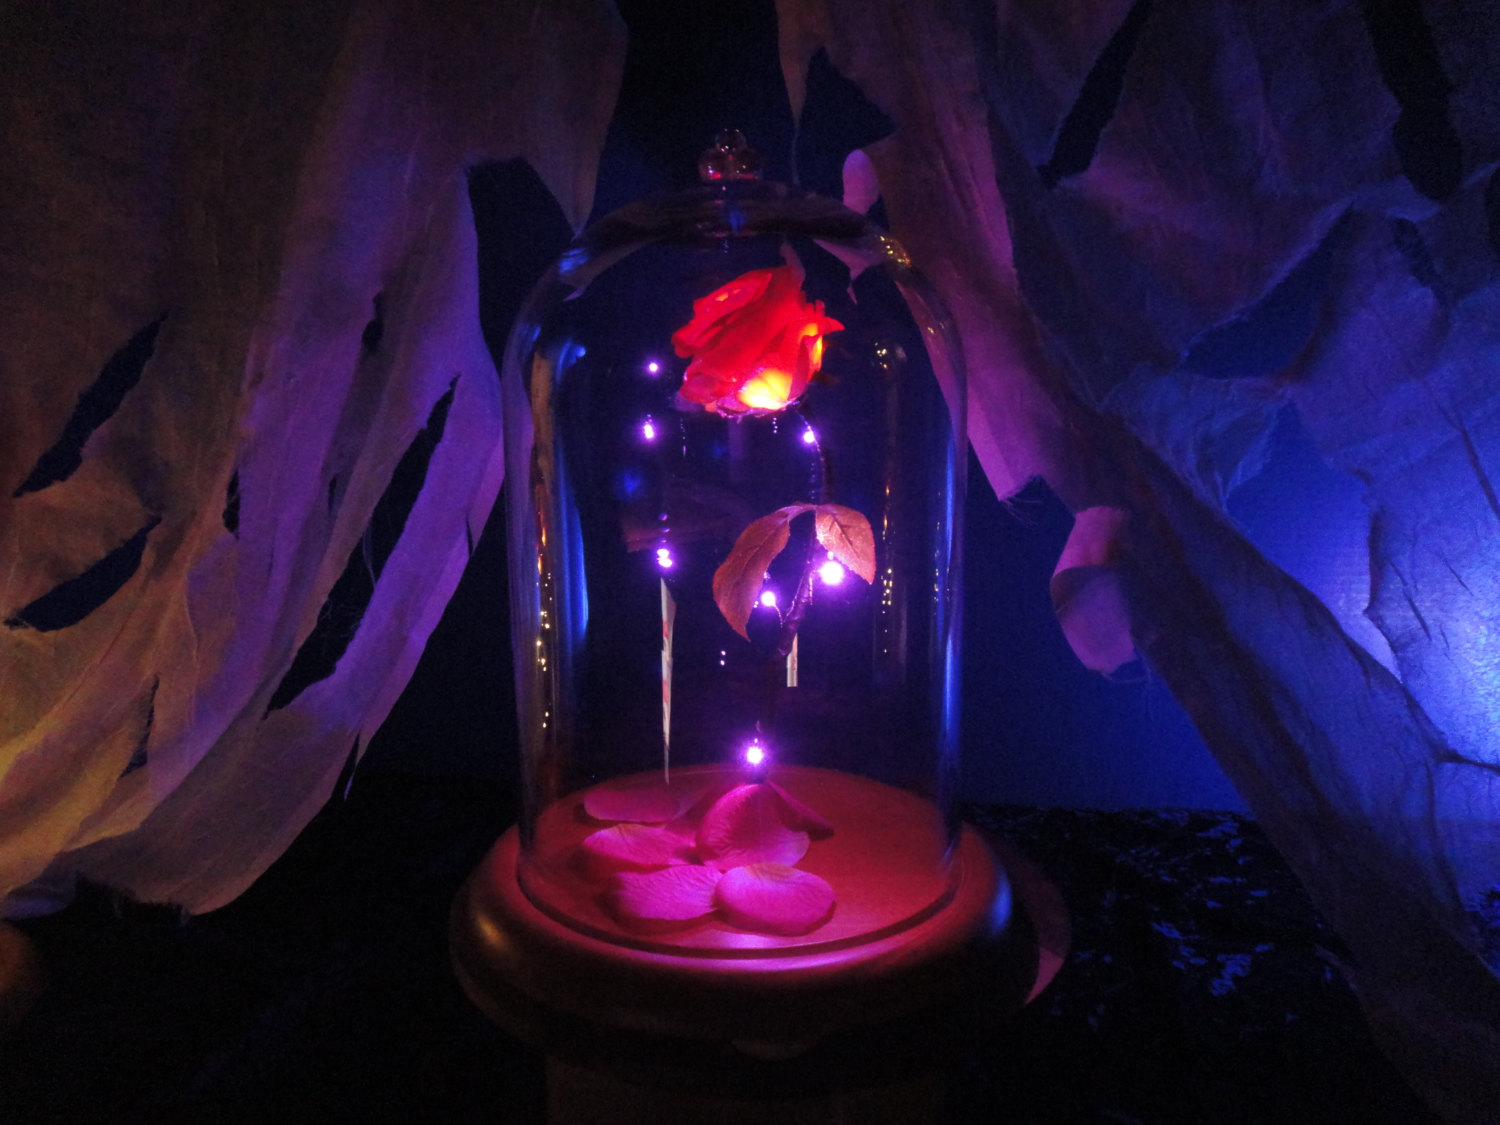 You can now get your very own magical enchanted rose, just like Belle